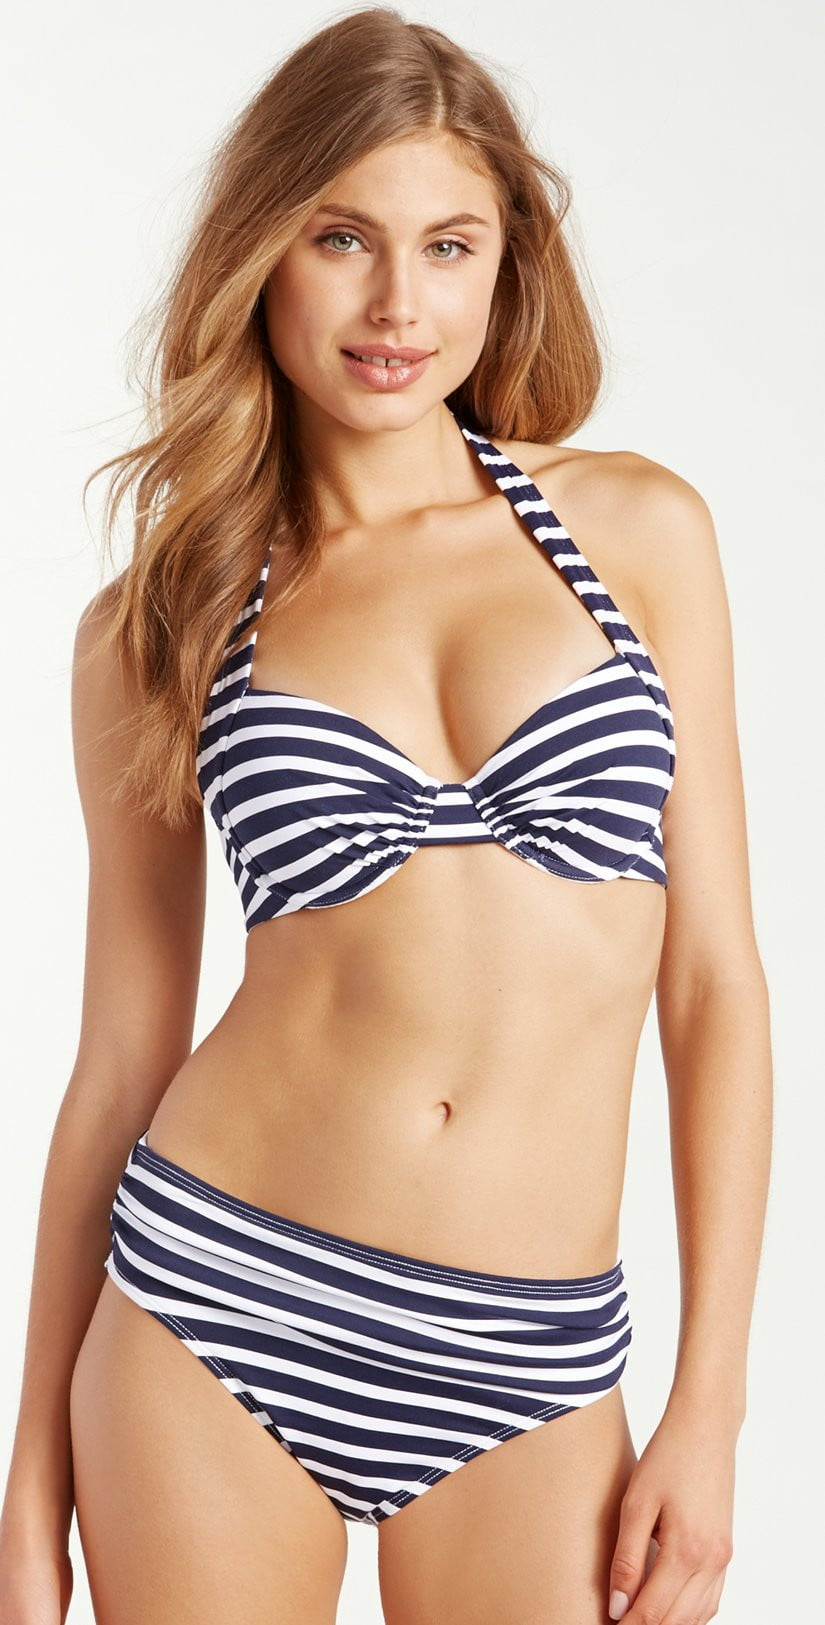 Tommy Bahama Brenton Stripes Underwire Bikini Top and Bottom